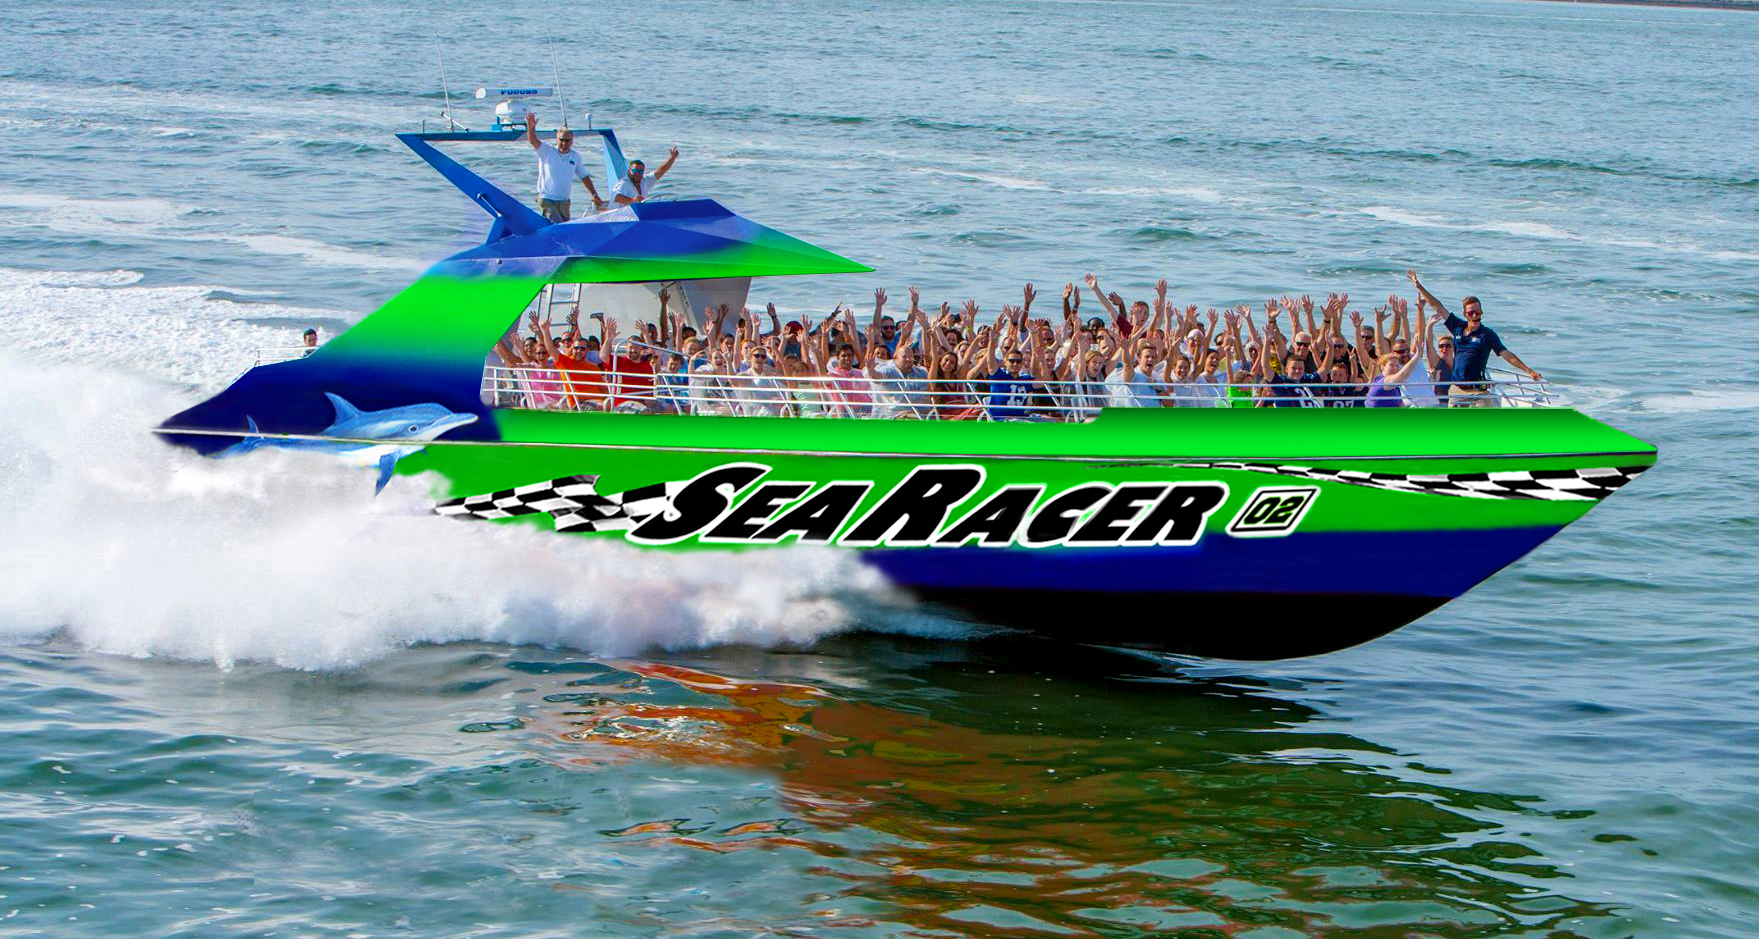 Like a thrill? Take a ride out on the SEA RACER!